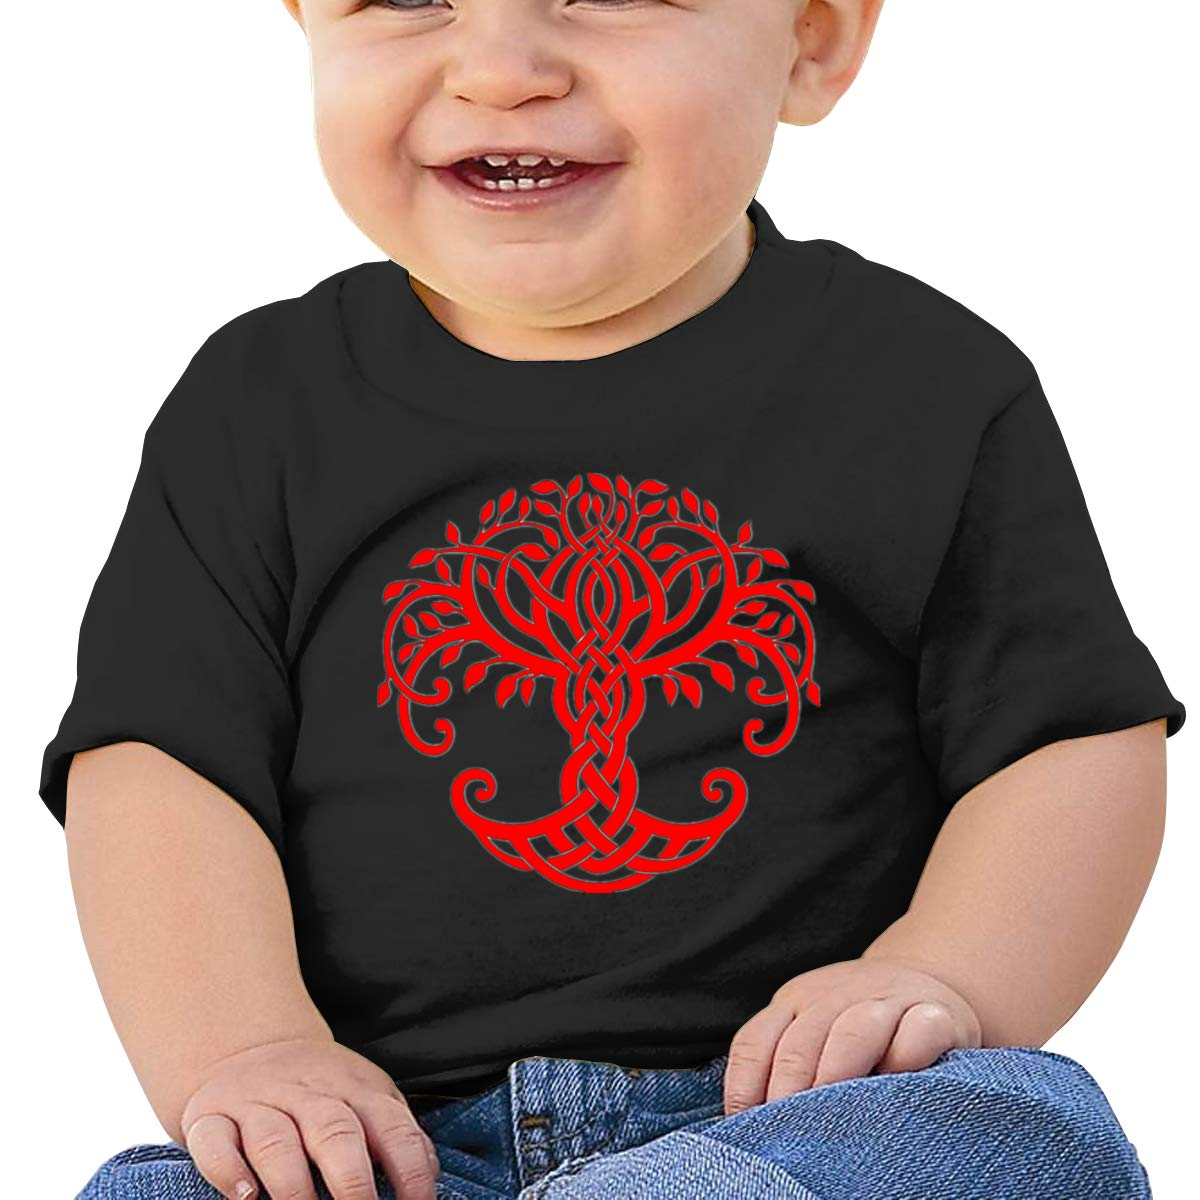 JVNSS Celtic Tree of Life Baby T-Shirt Toddler//Infant Cotton T Shirts Fashion Graphic Tees for 6M-2T Baby